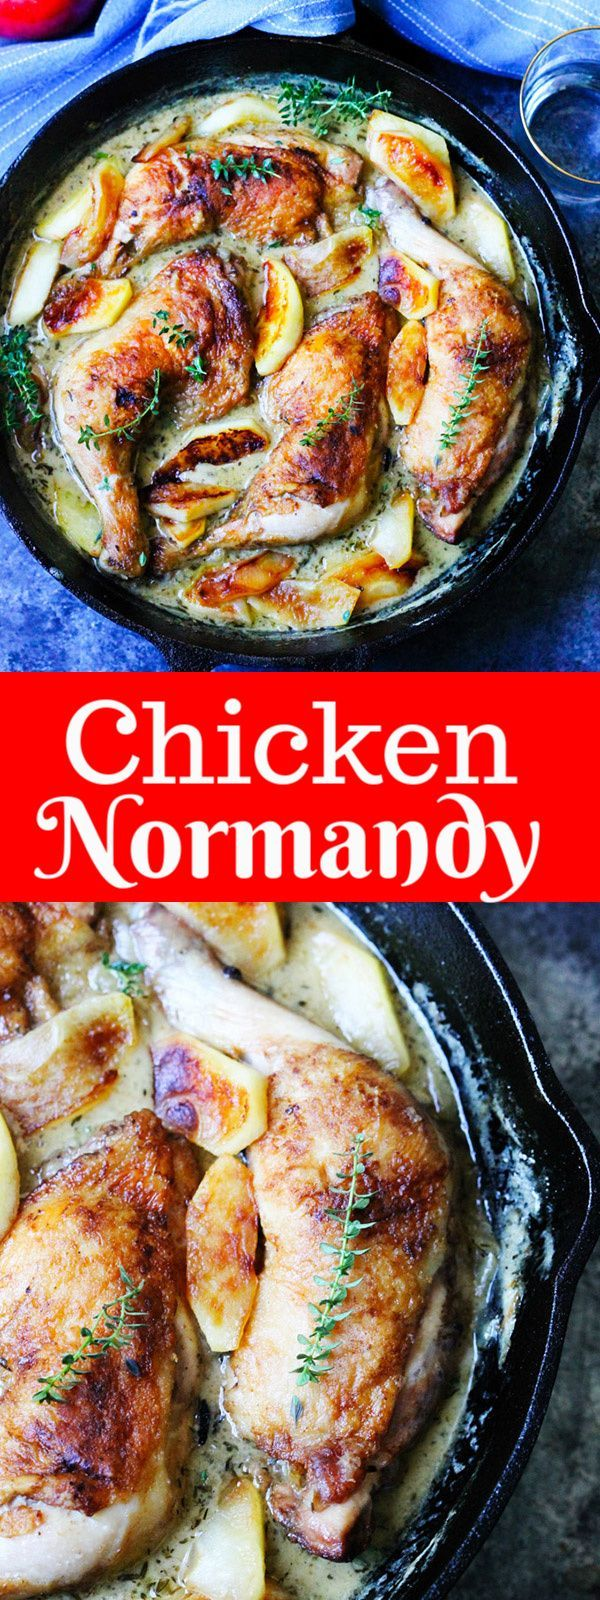 Chicken Normandy Braised Chicken Legs In Apple Cider Brandy Recipe Chicken Normandy French Chicken Dishes Braised Chicken